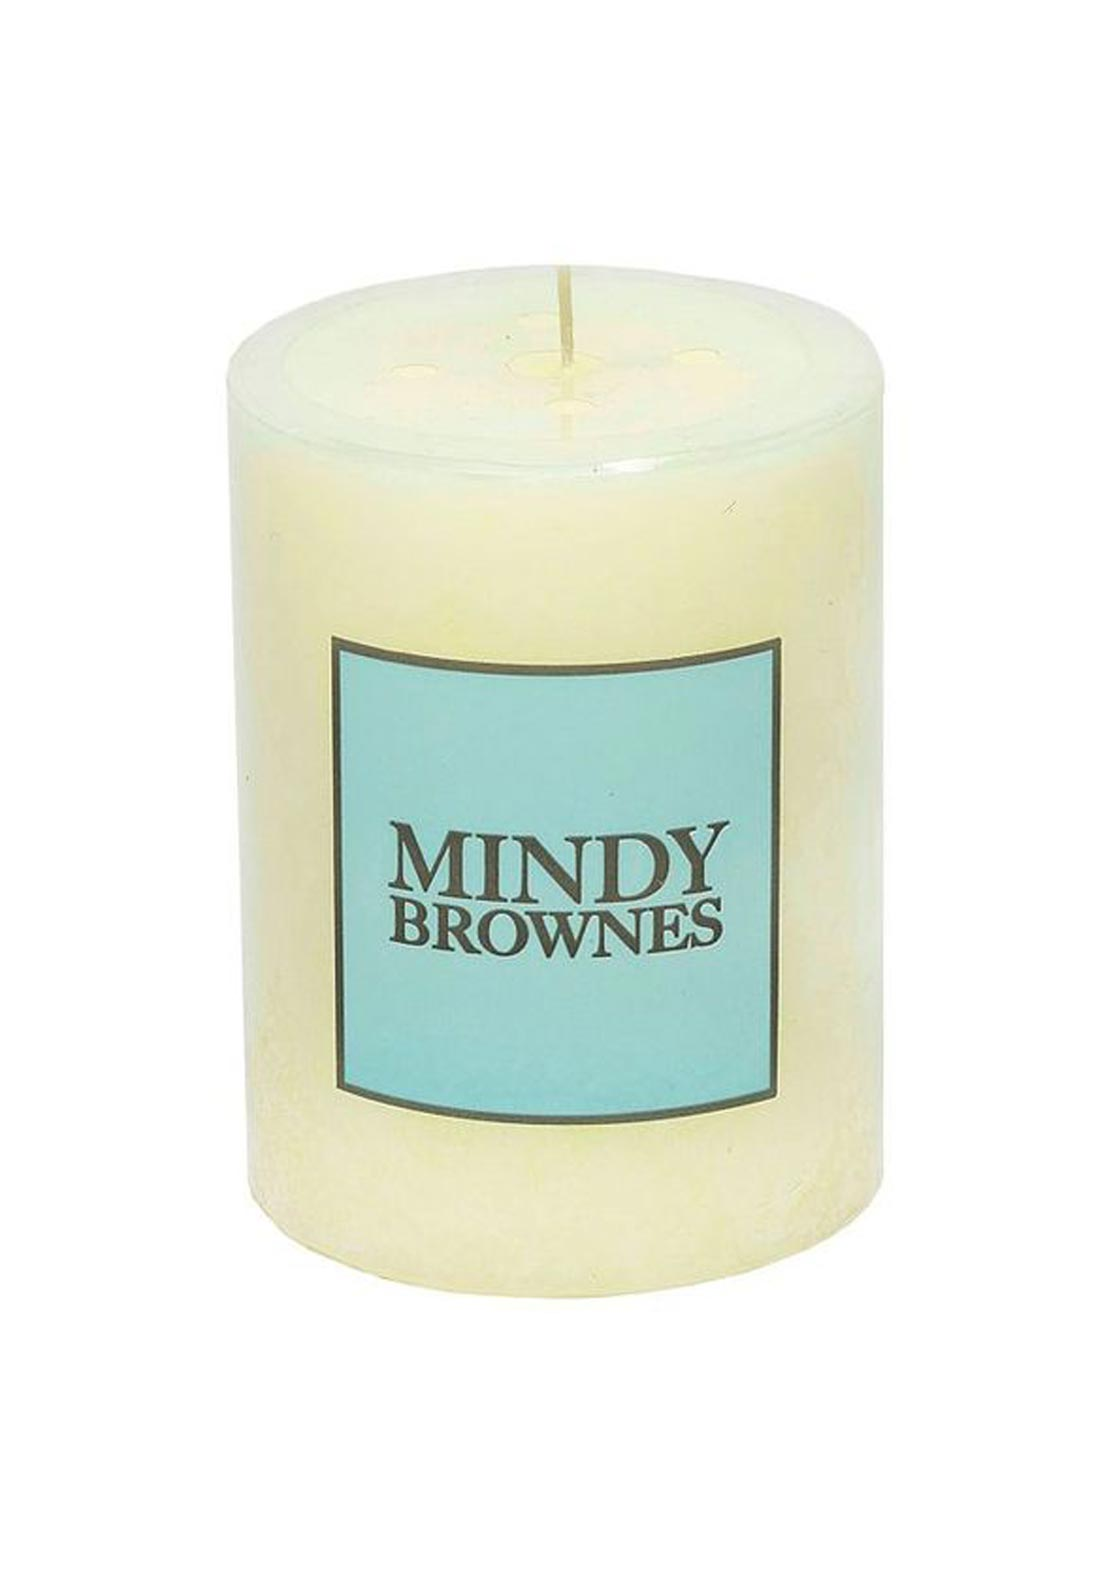 Mindy Brownes Vanilla Scented Pillar Candle, Small